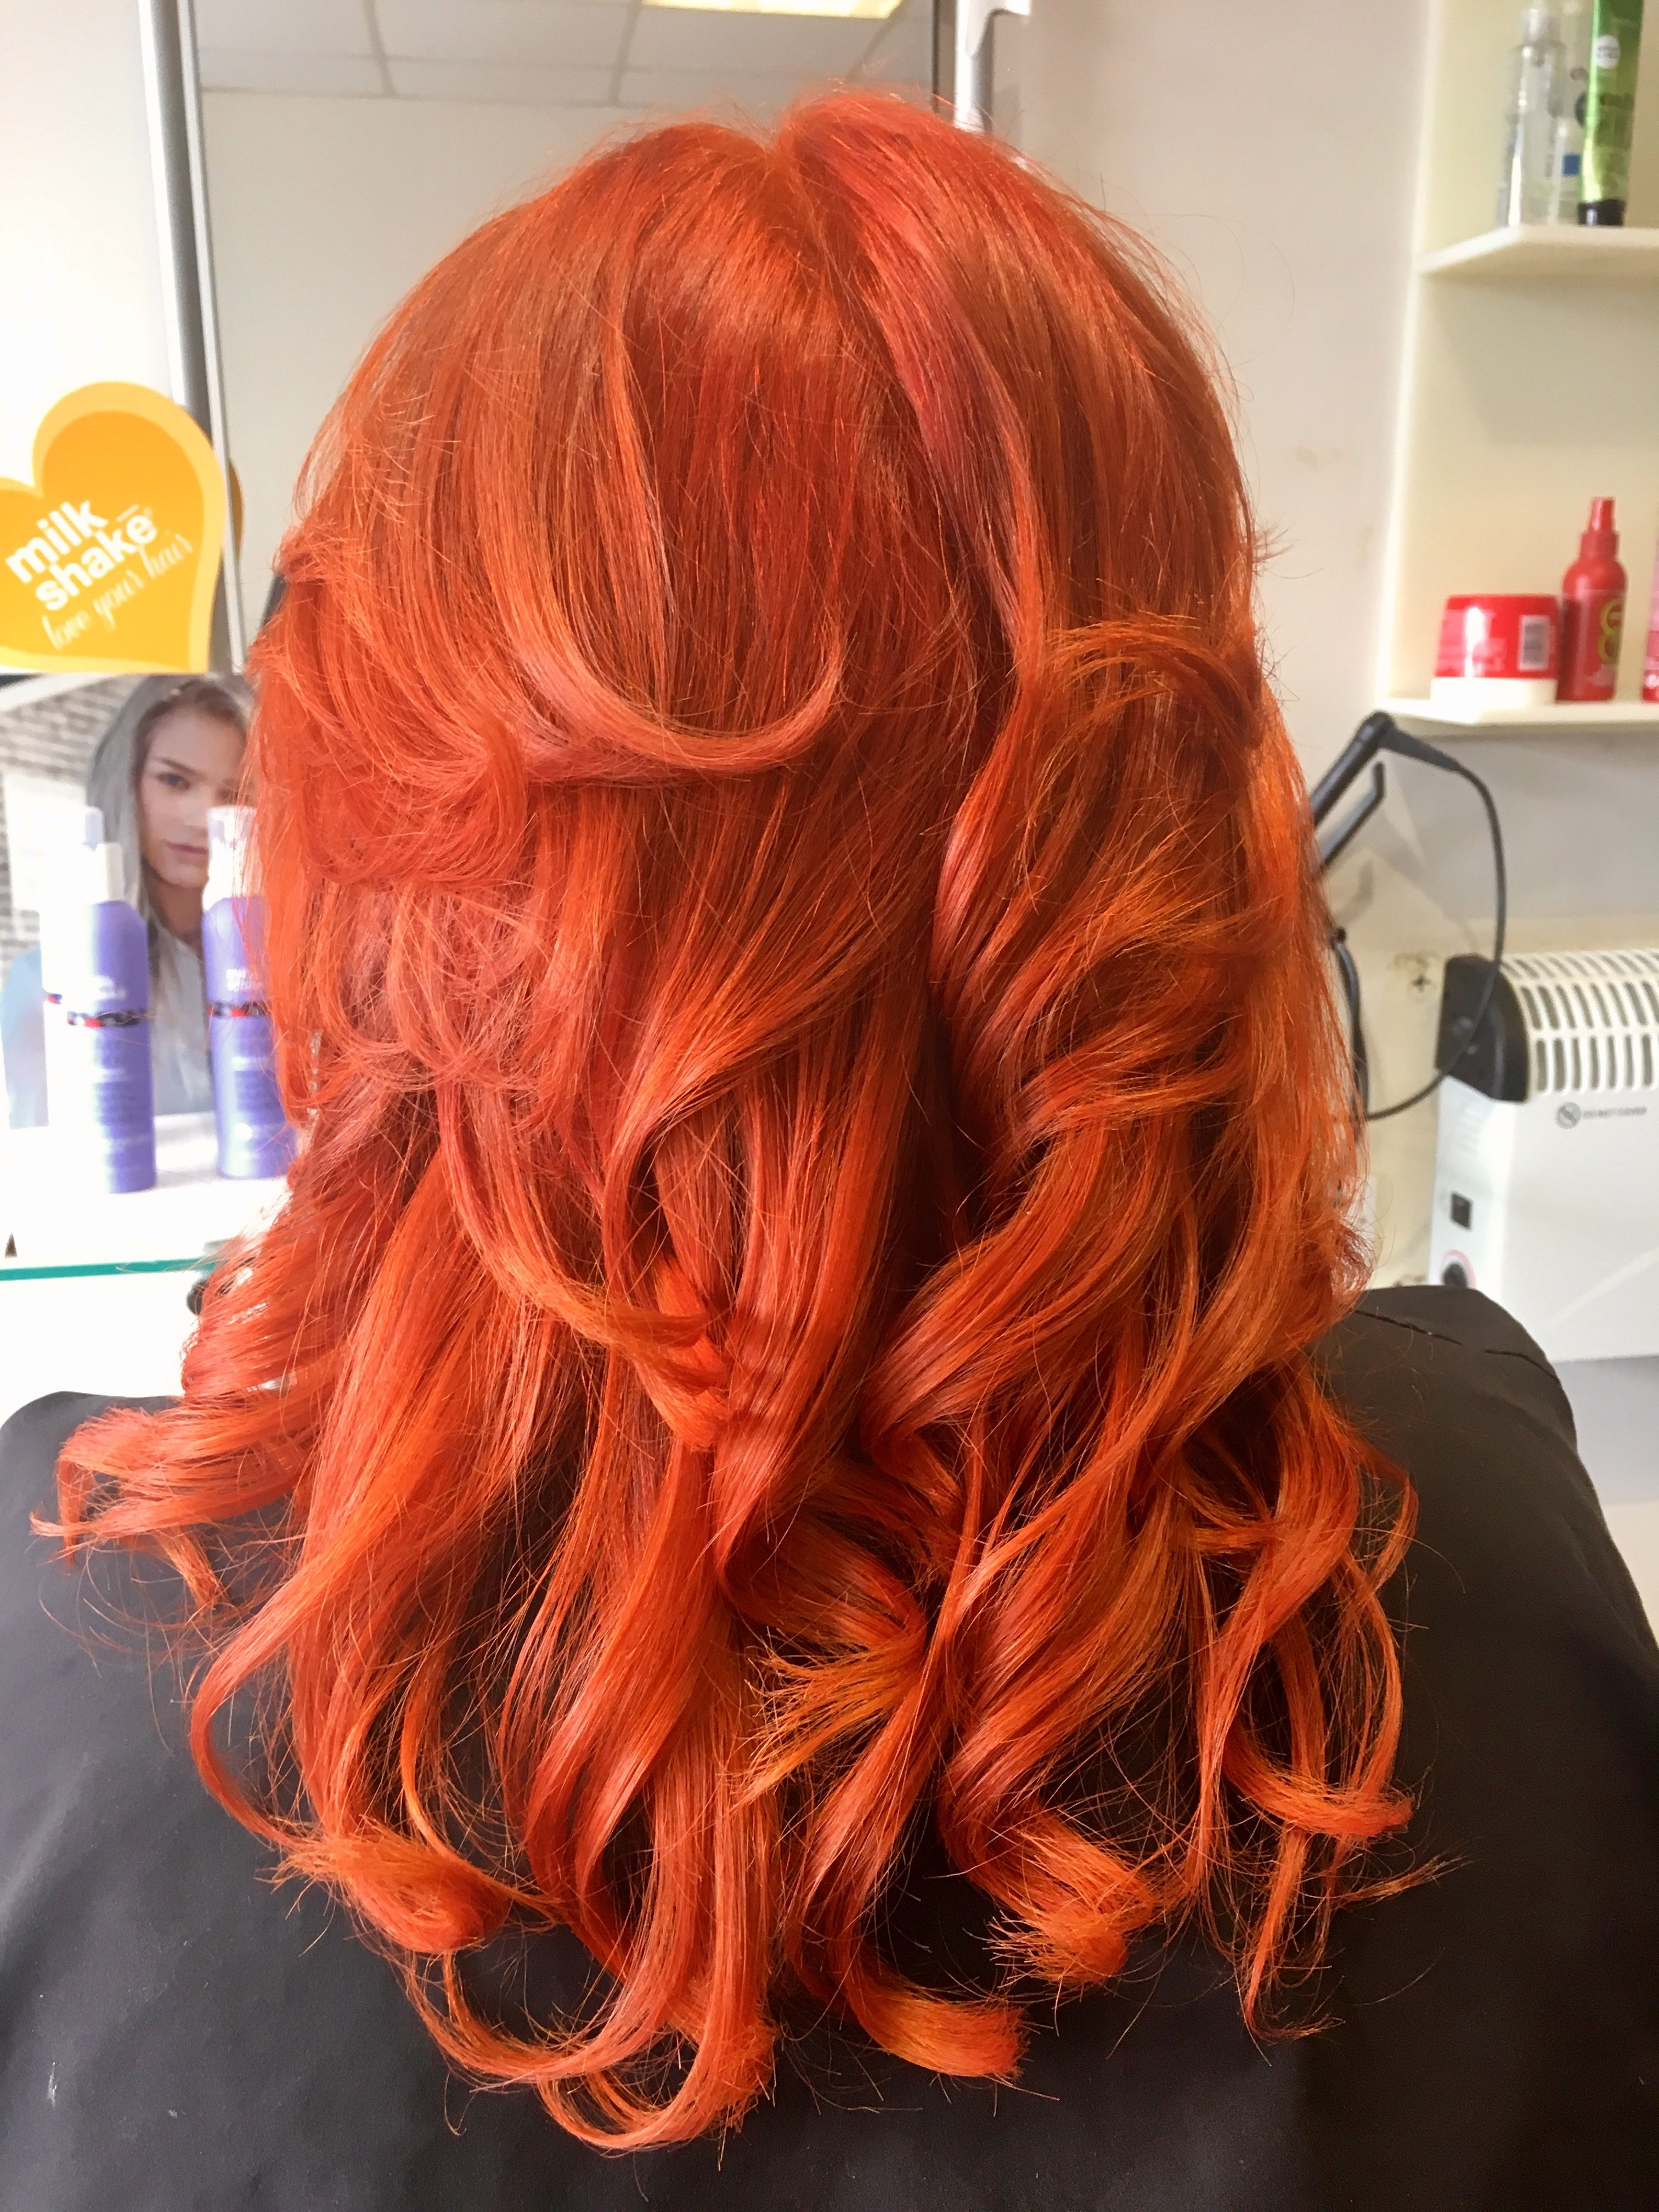 Pin by Ant³nia Sz³fia Szaller on Hairs